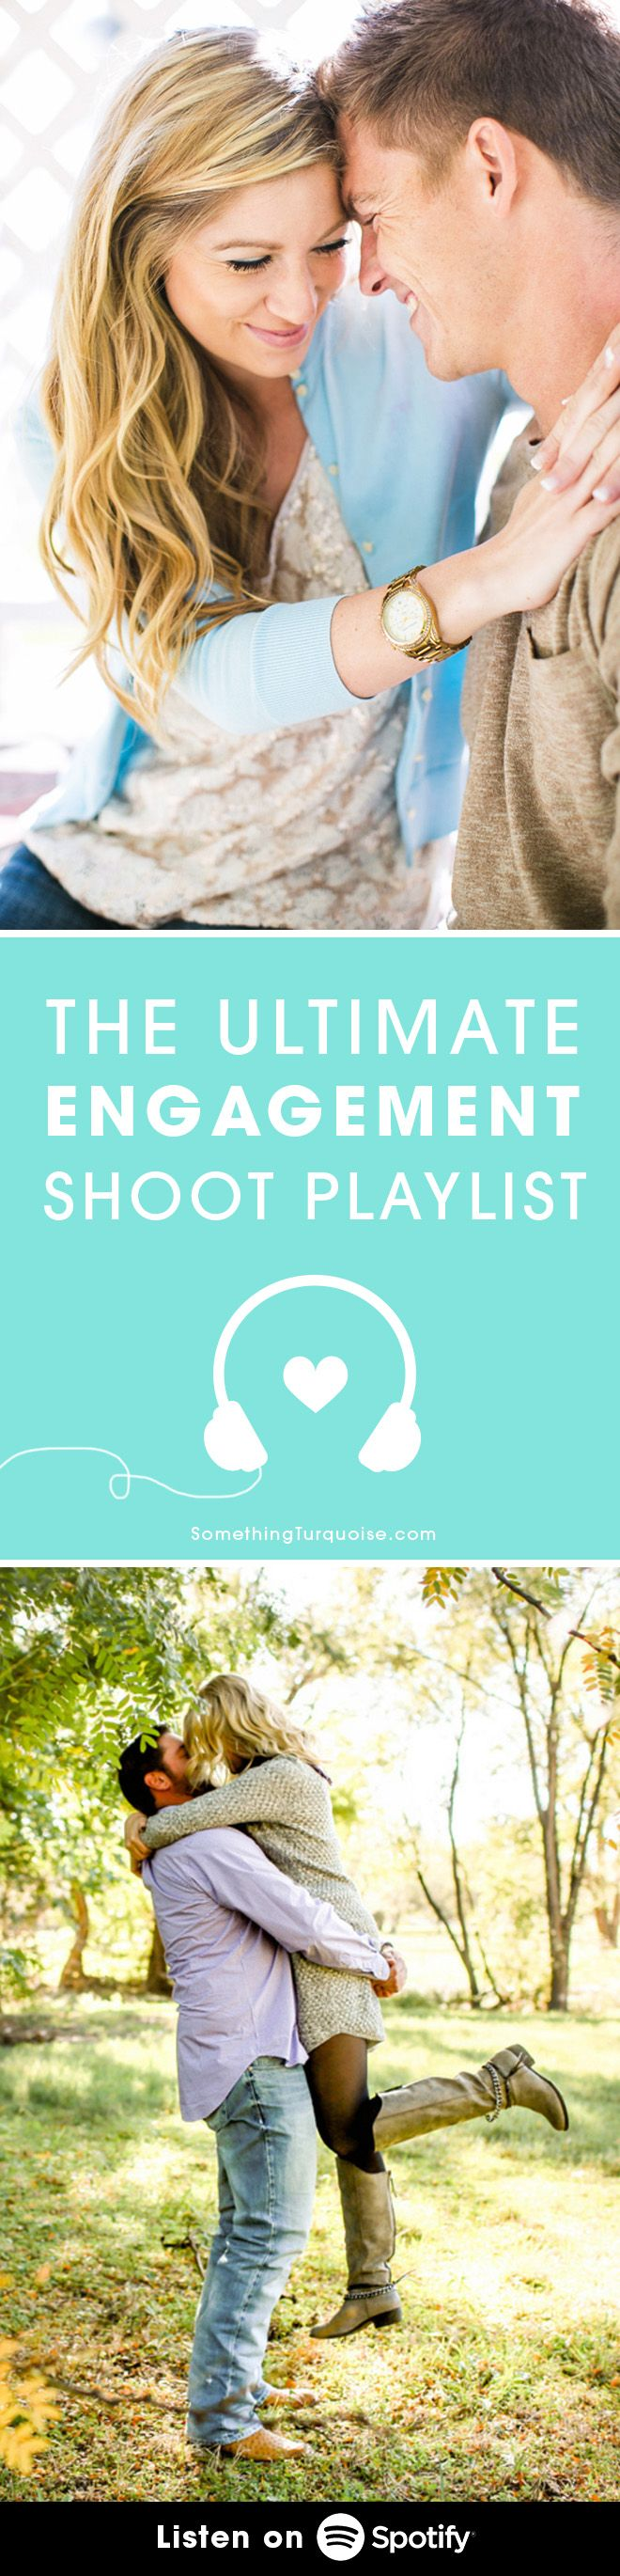 The Ultimate Playlist for your Engagement Shoot, listen for free on Spotify!